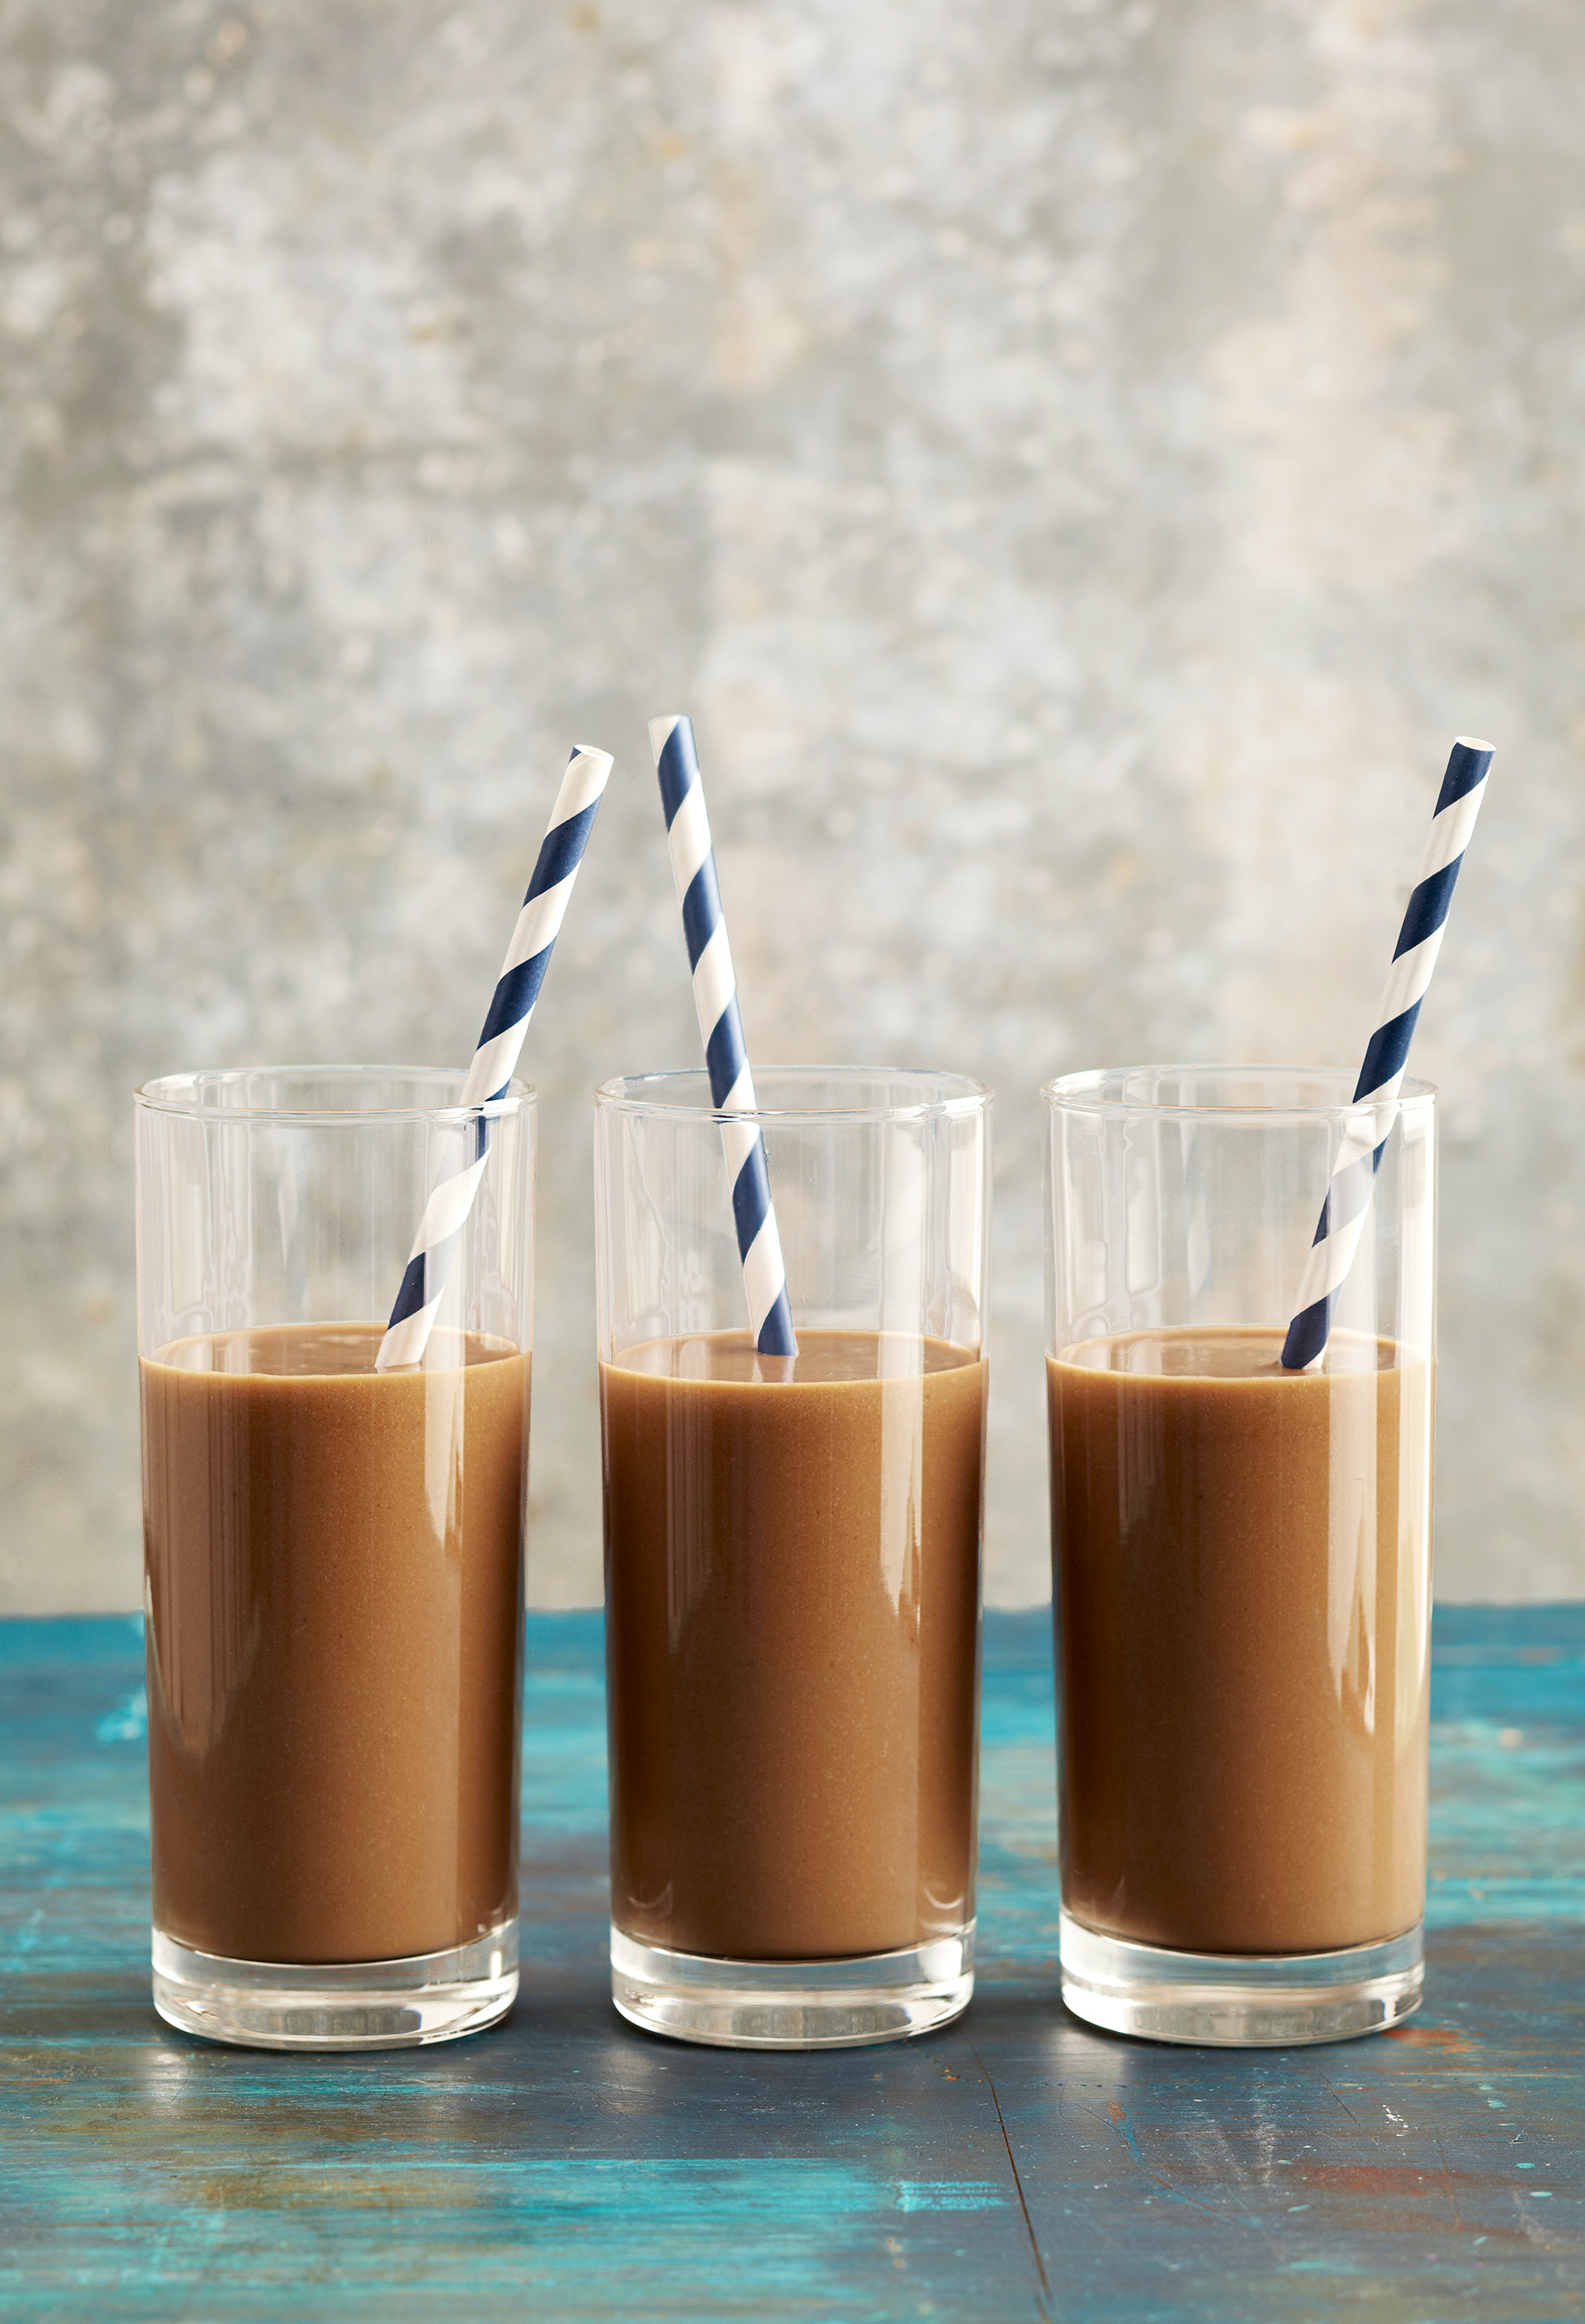 Energizing Mocha-Almond Smoothies with straws